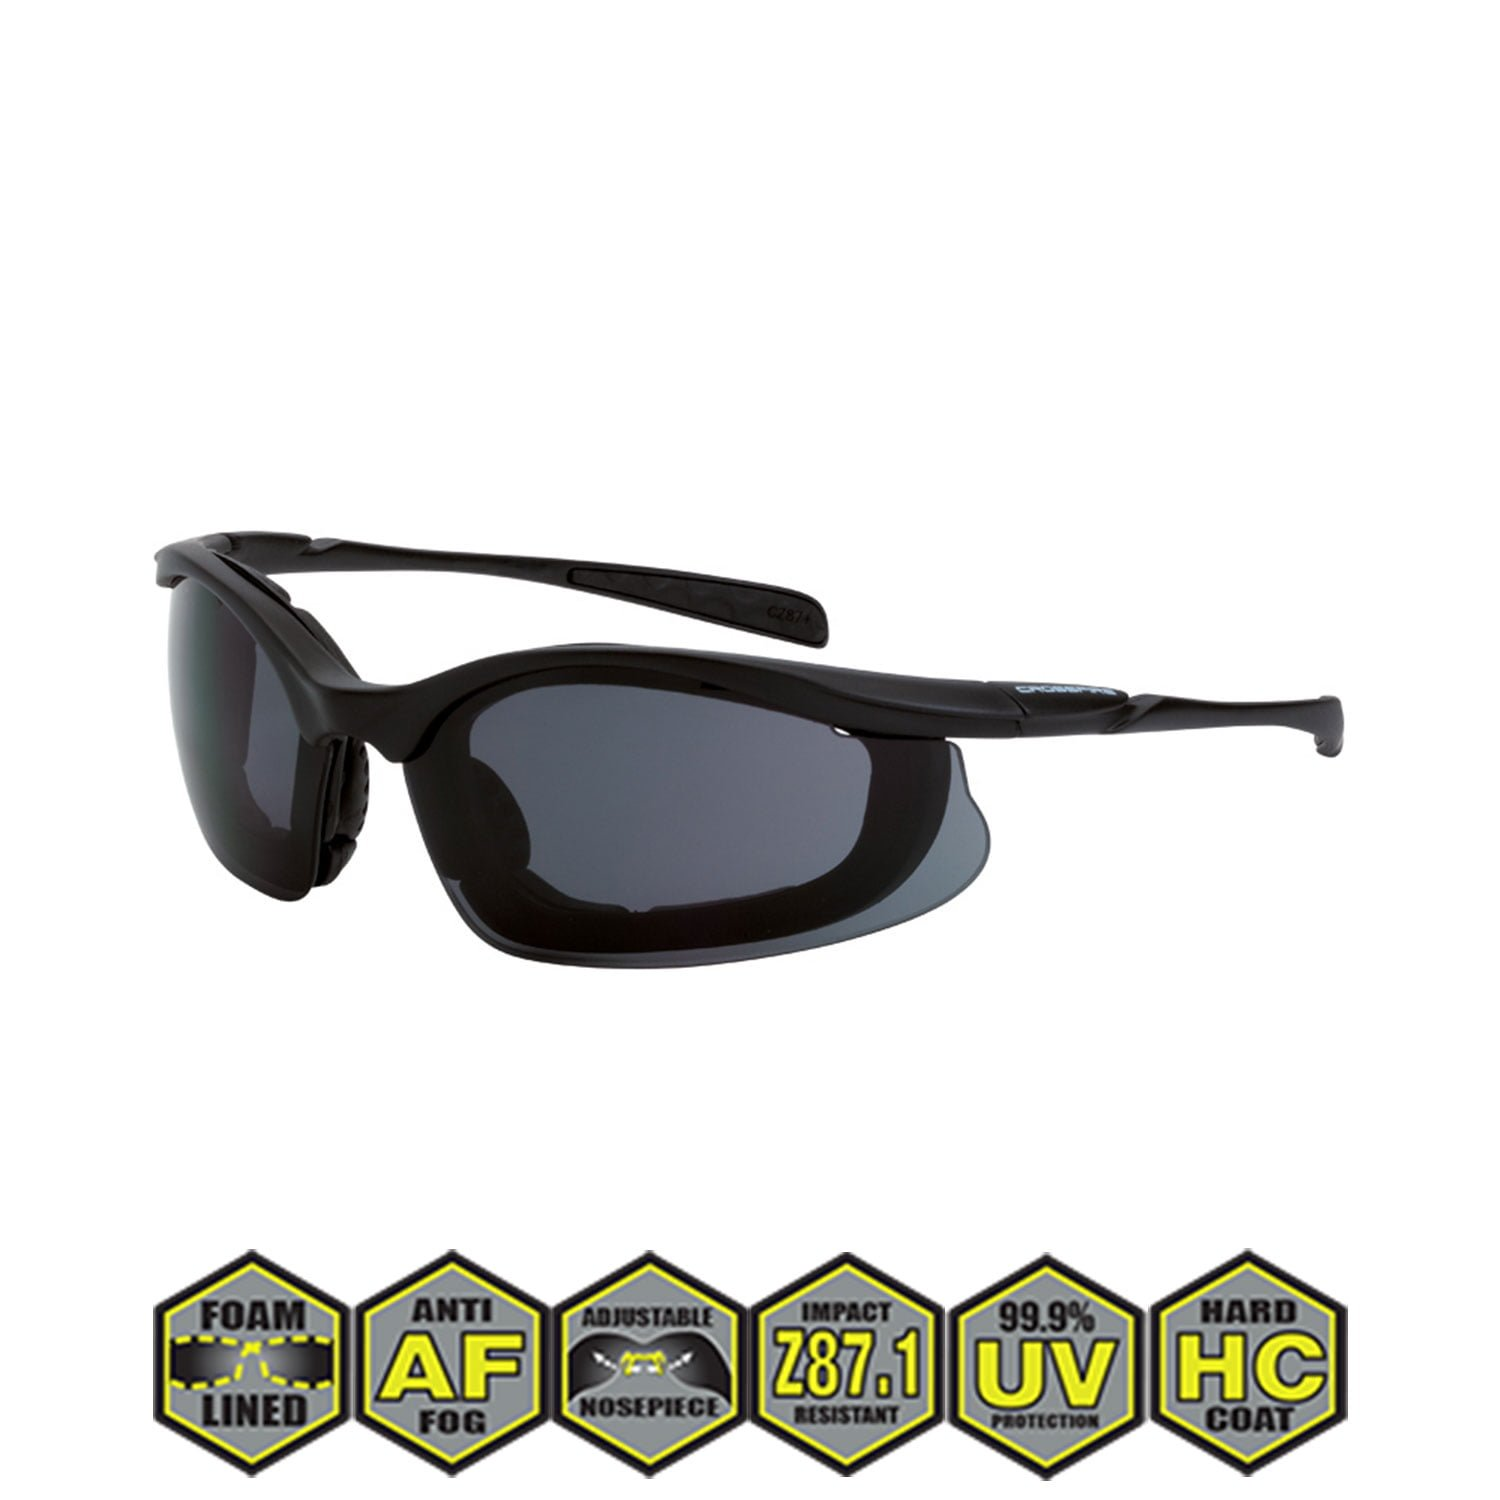 adec0dee91b Radians Crossfire Concept Safety Glasses